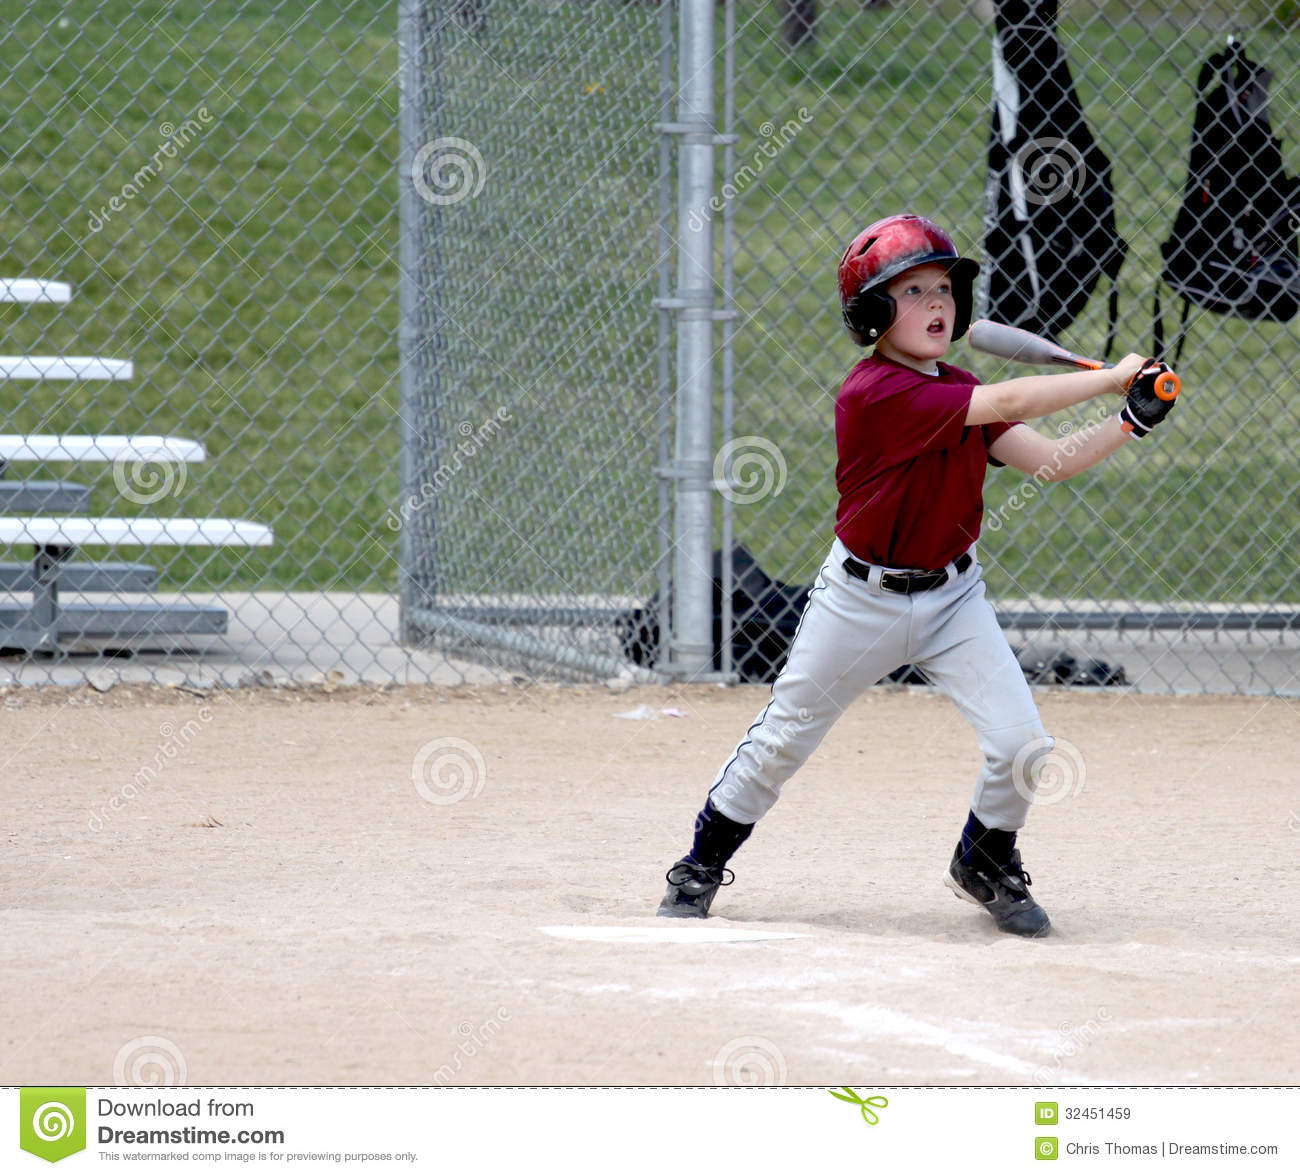 Midget baseball player